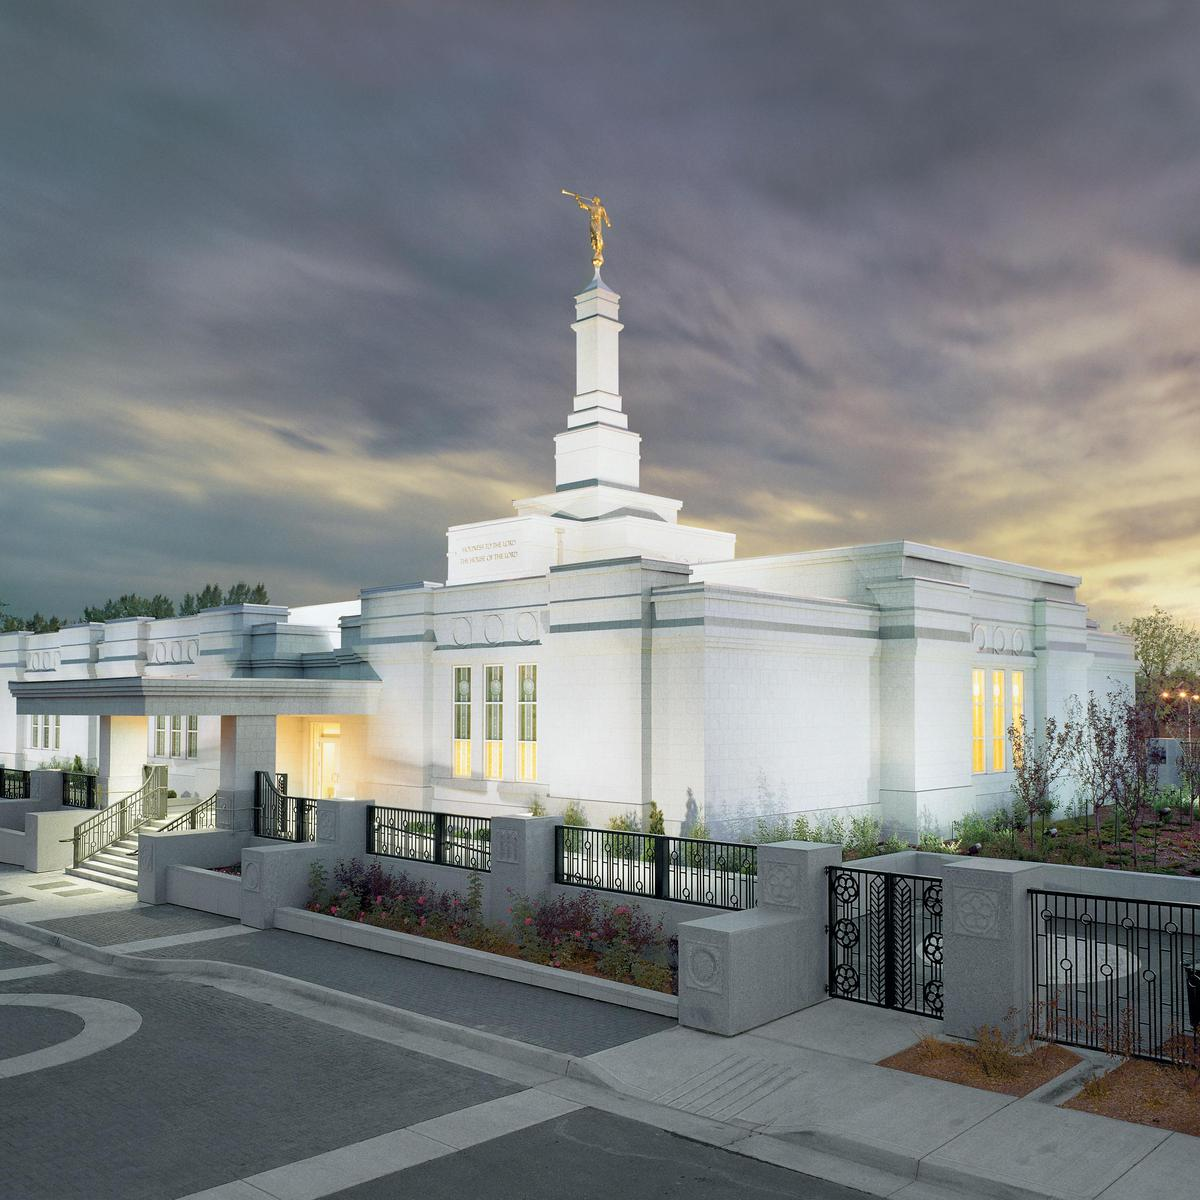 Image of the Edmonton Alberta Mormon Temple in Canada